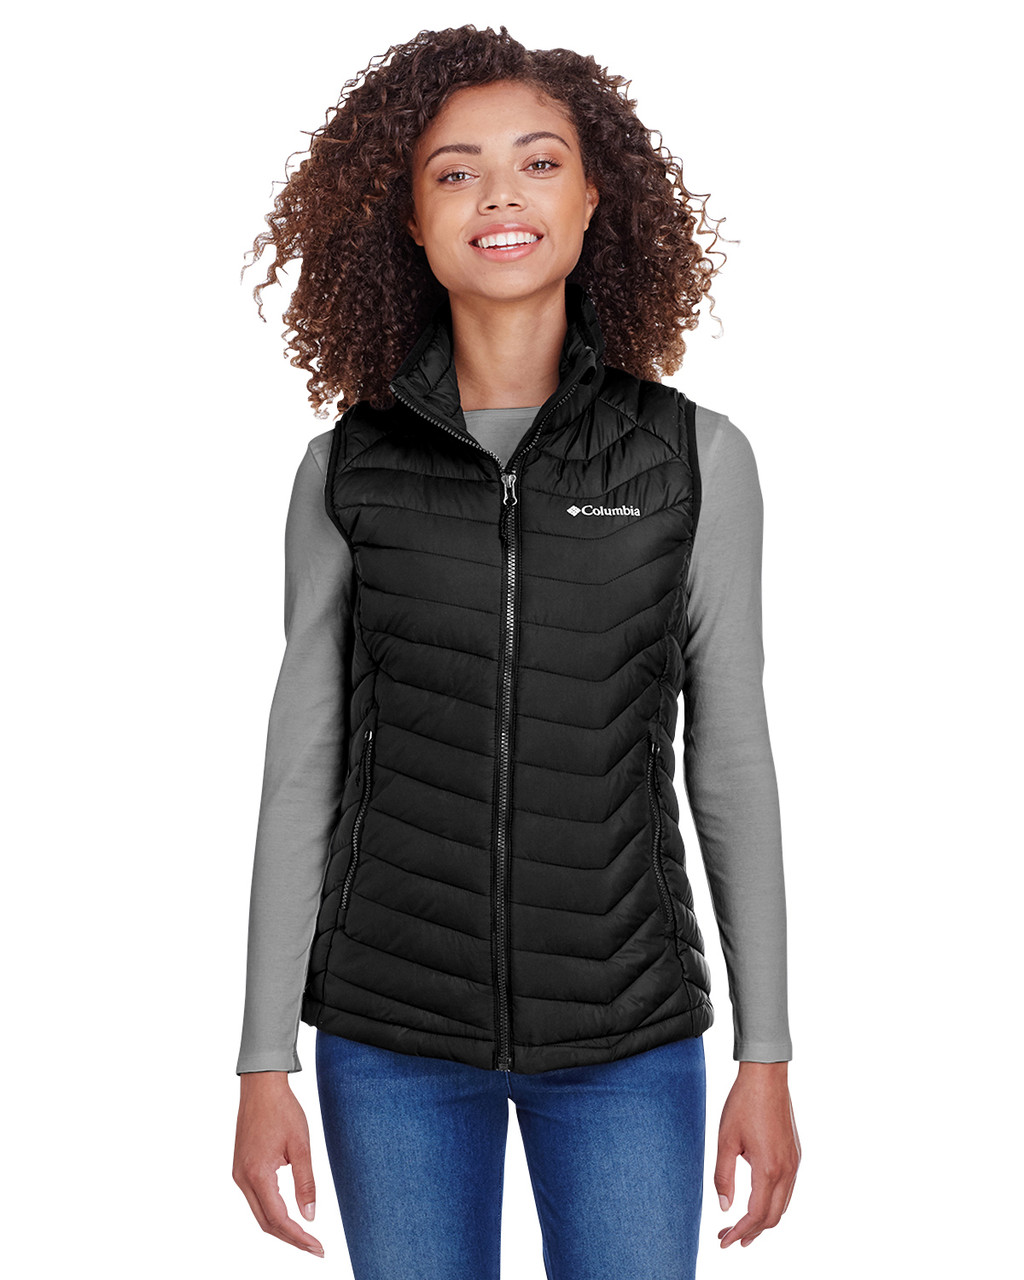 Black - 1757411 Columbia Ladies' Powder Lite Vest | BlankClothing.ca